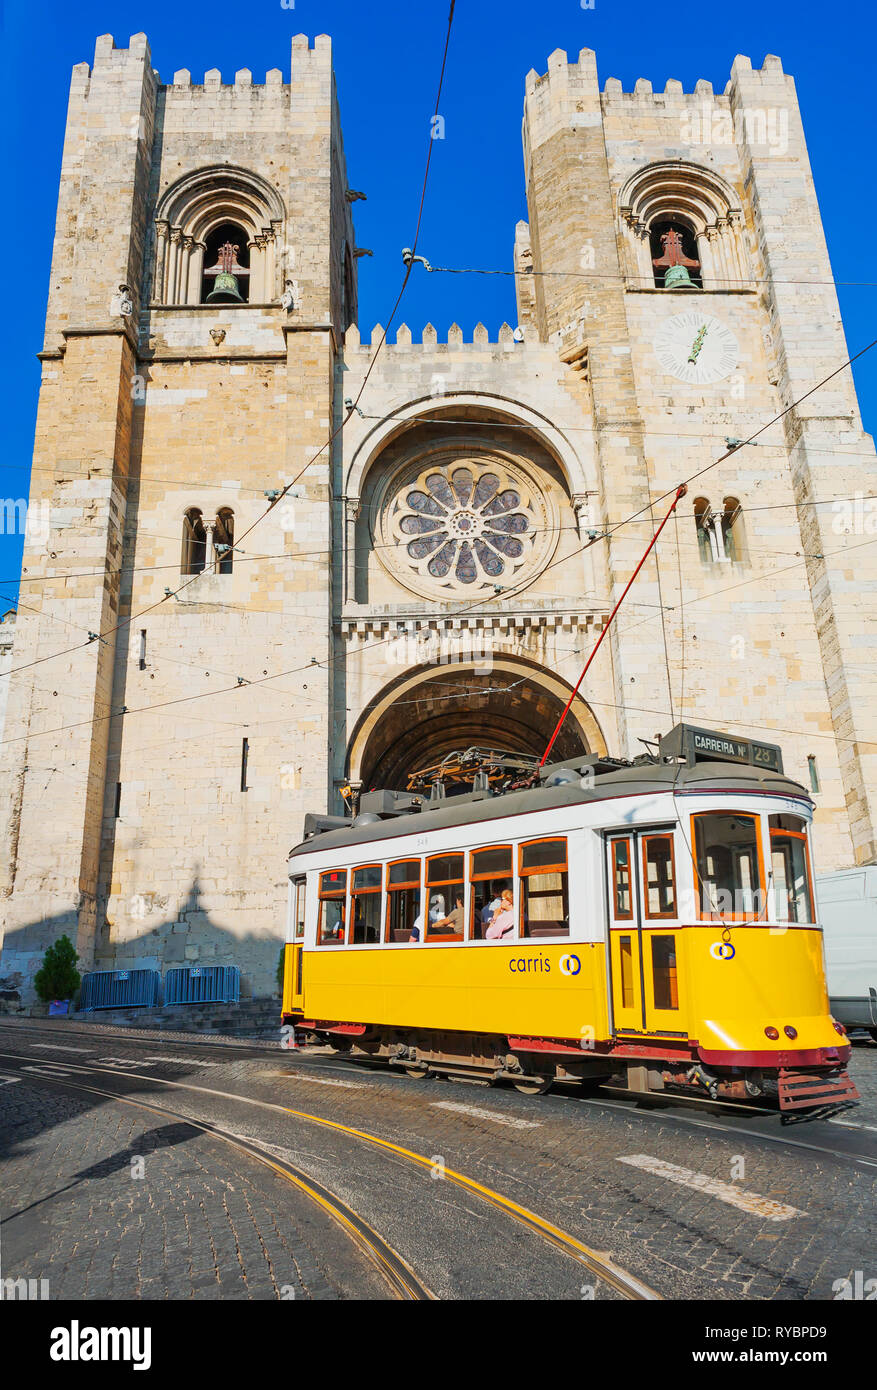 Eletrico (electric tram) in front of the Se Cathedral, Lisbon, Portugal, Europe - Stock Image